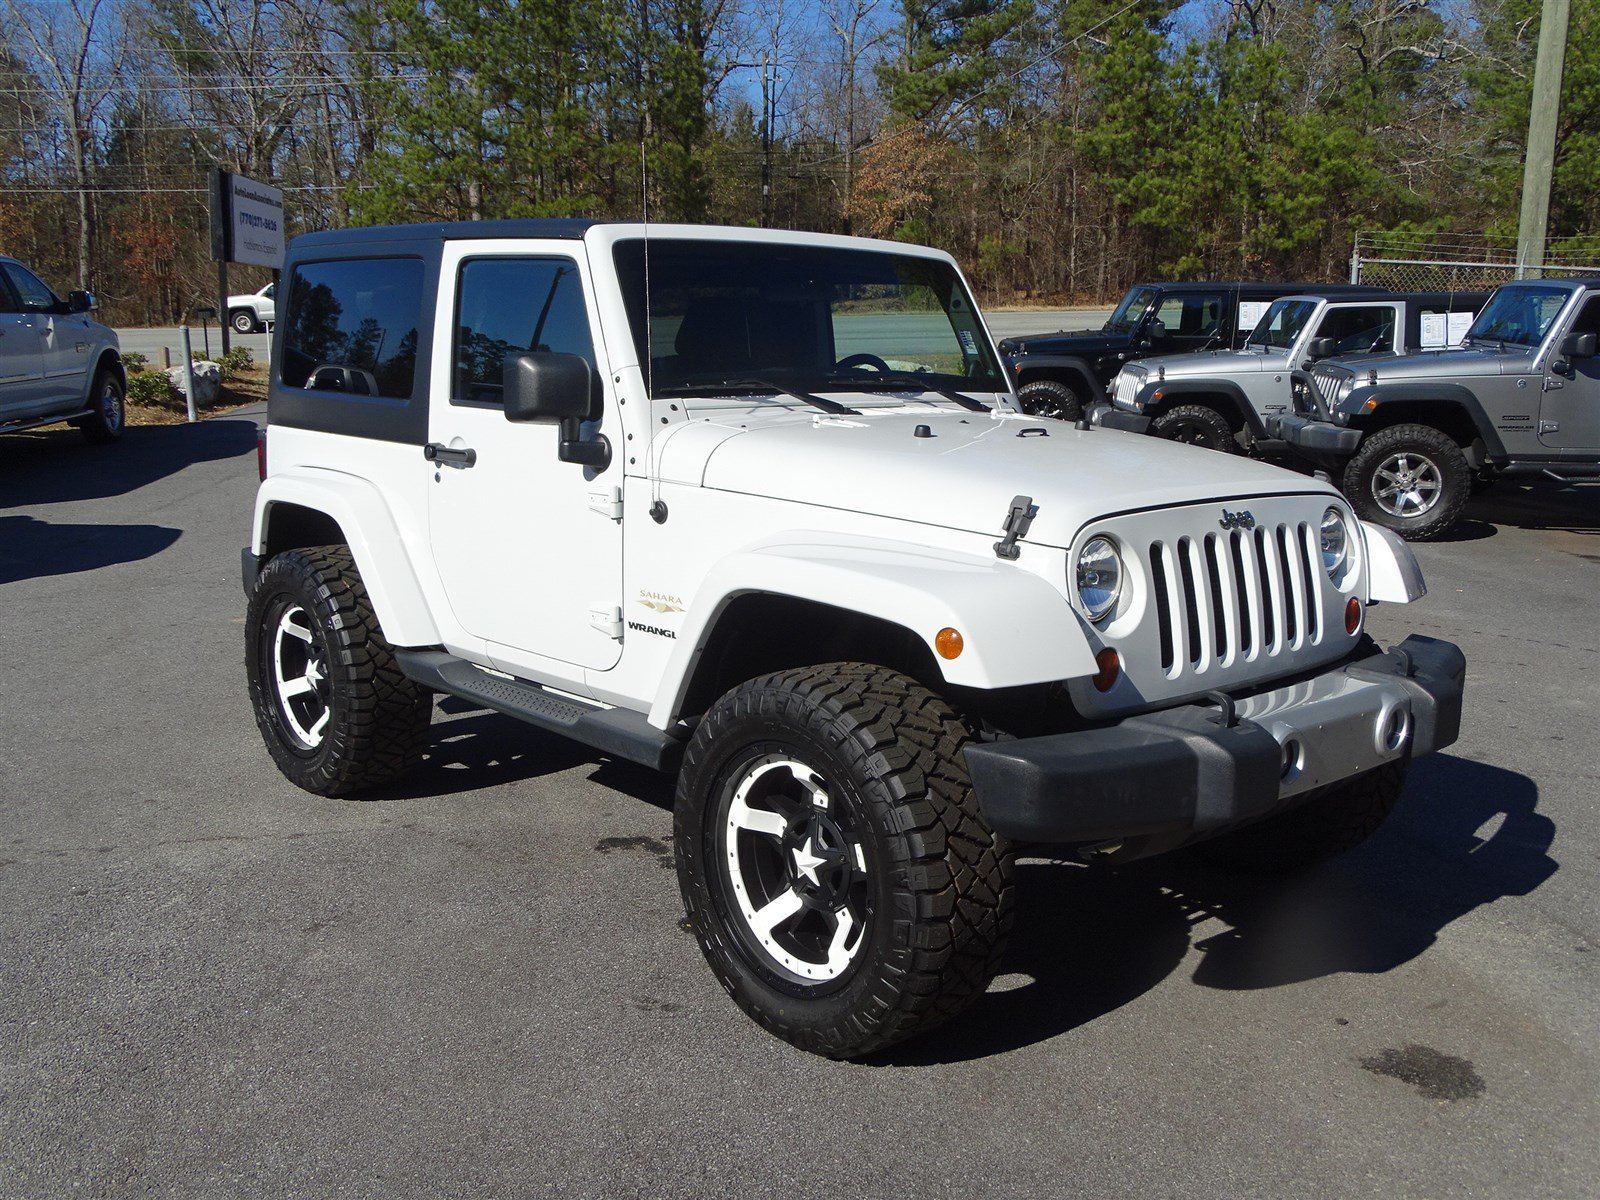 2012 Jeep Wrangler Sahara 4WD  1-Year SIRIUS Realtime Traffic Service 1-Year SIRIUS Travel Link